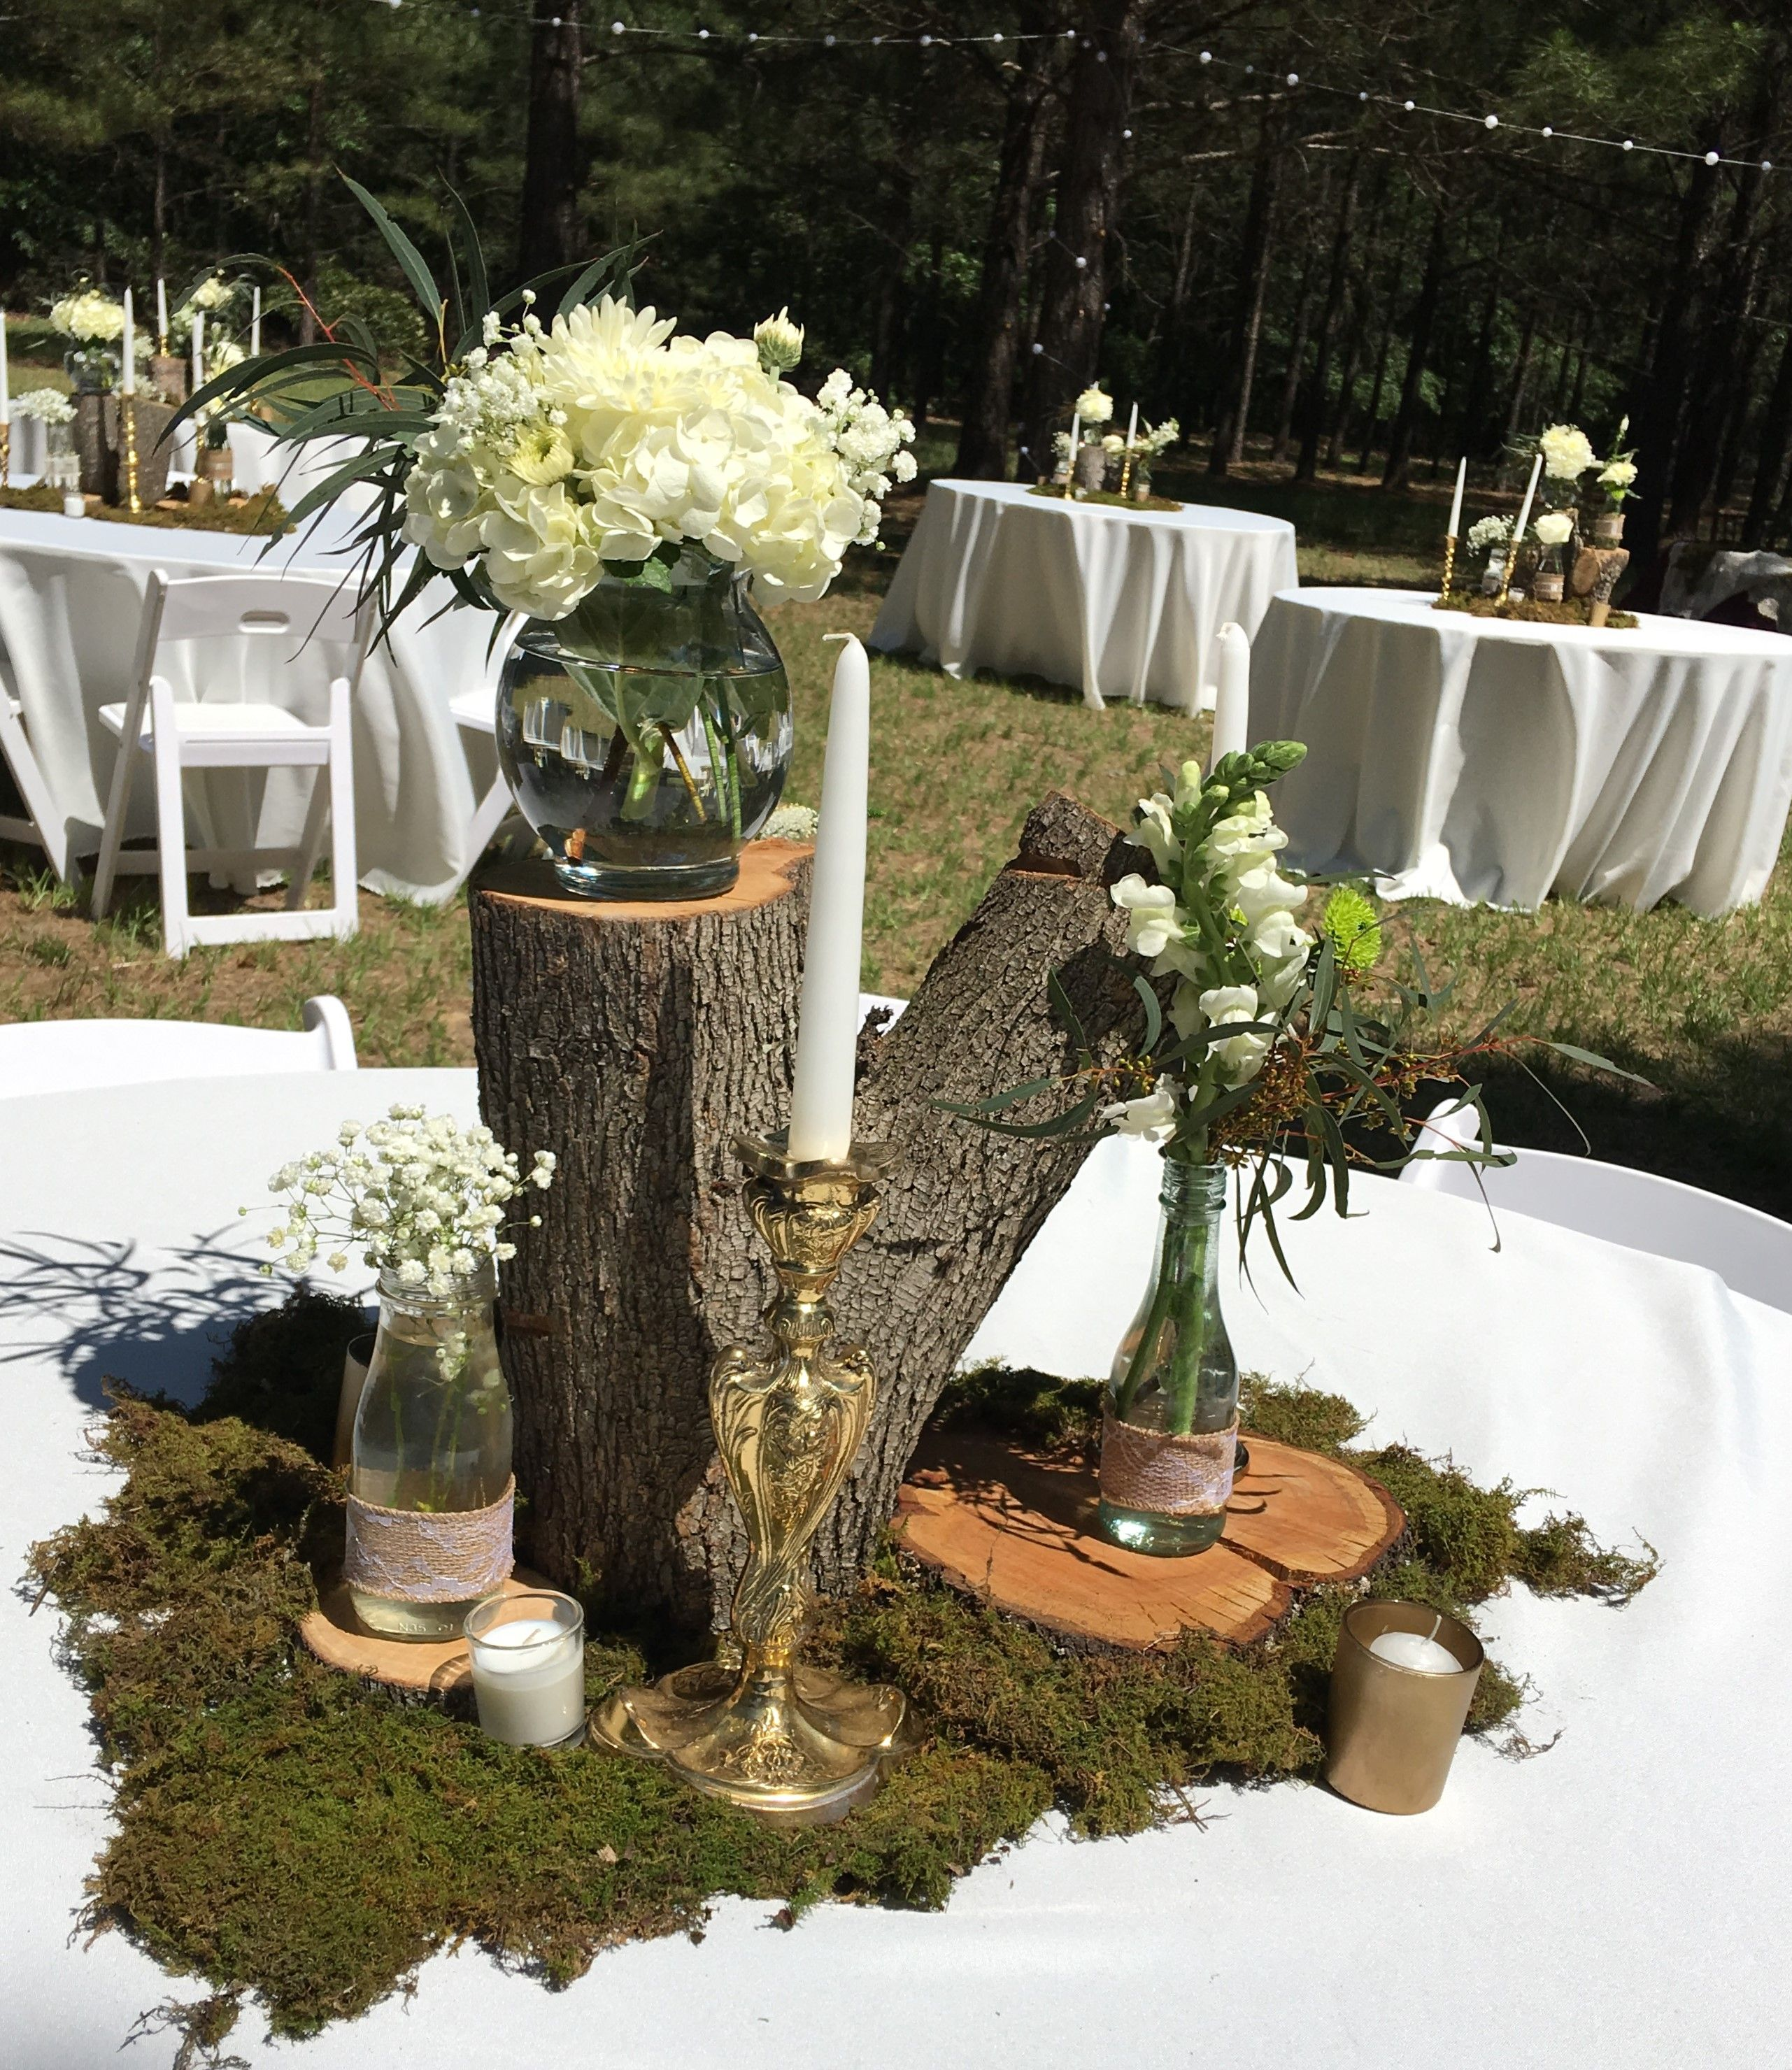 Southern Wedding Decoration Ideas: Ceremony Decor & Centerpieces By Southern Florals And